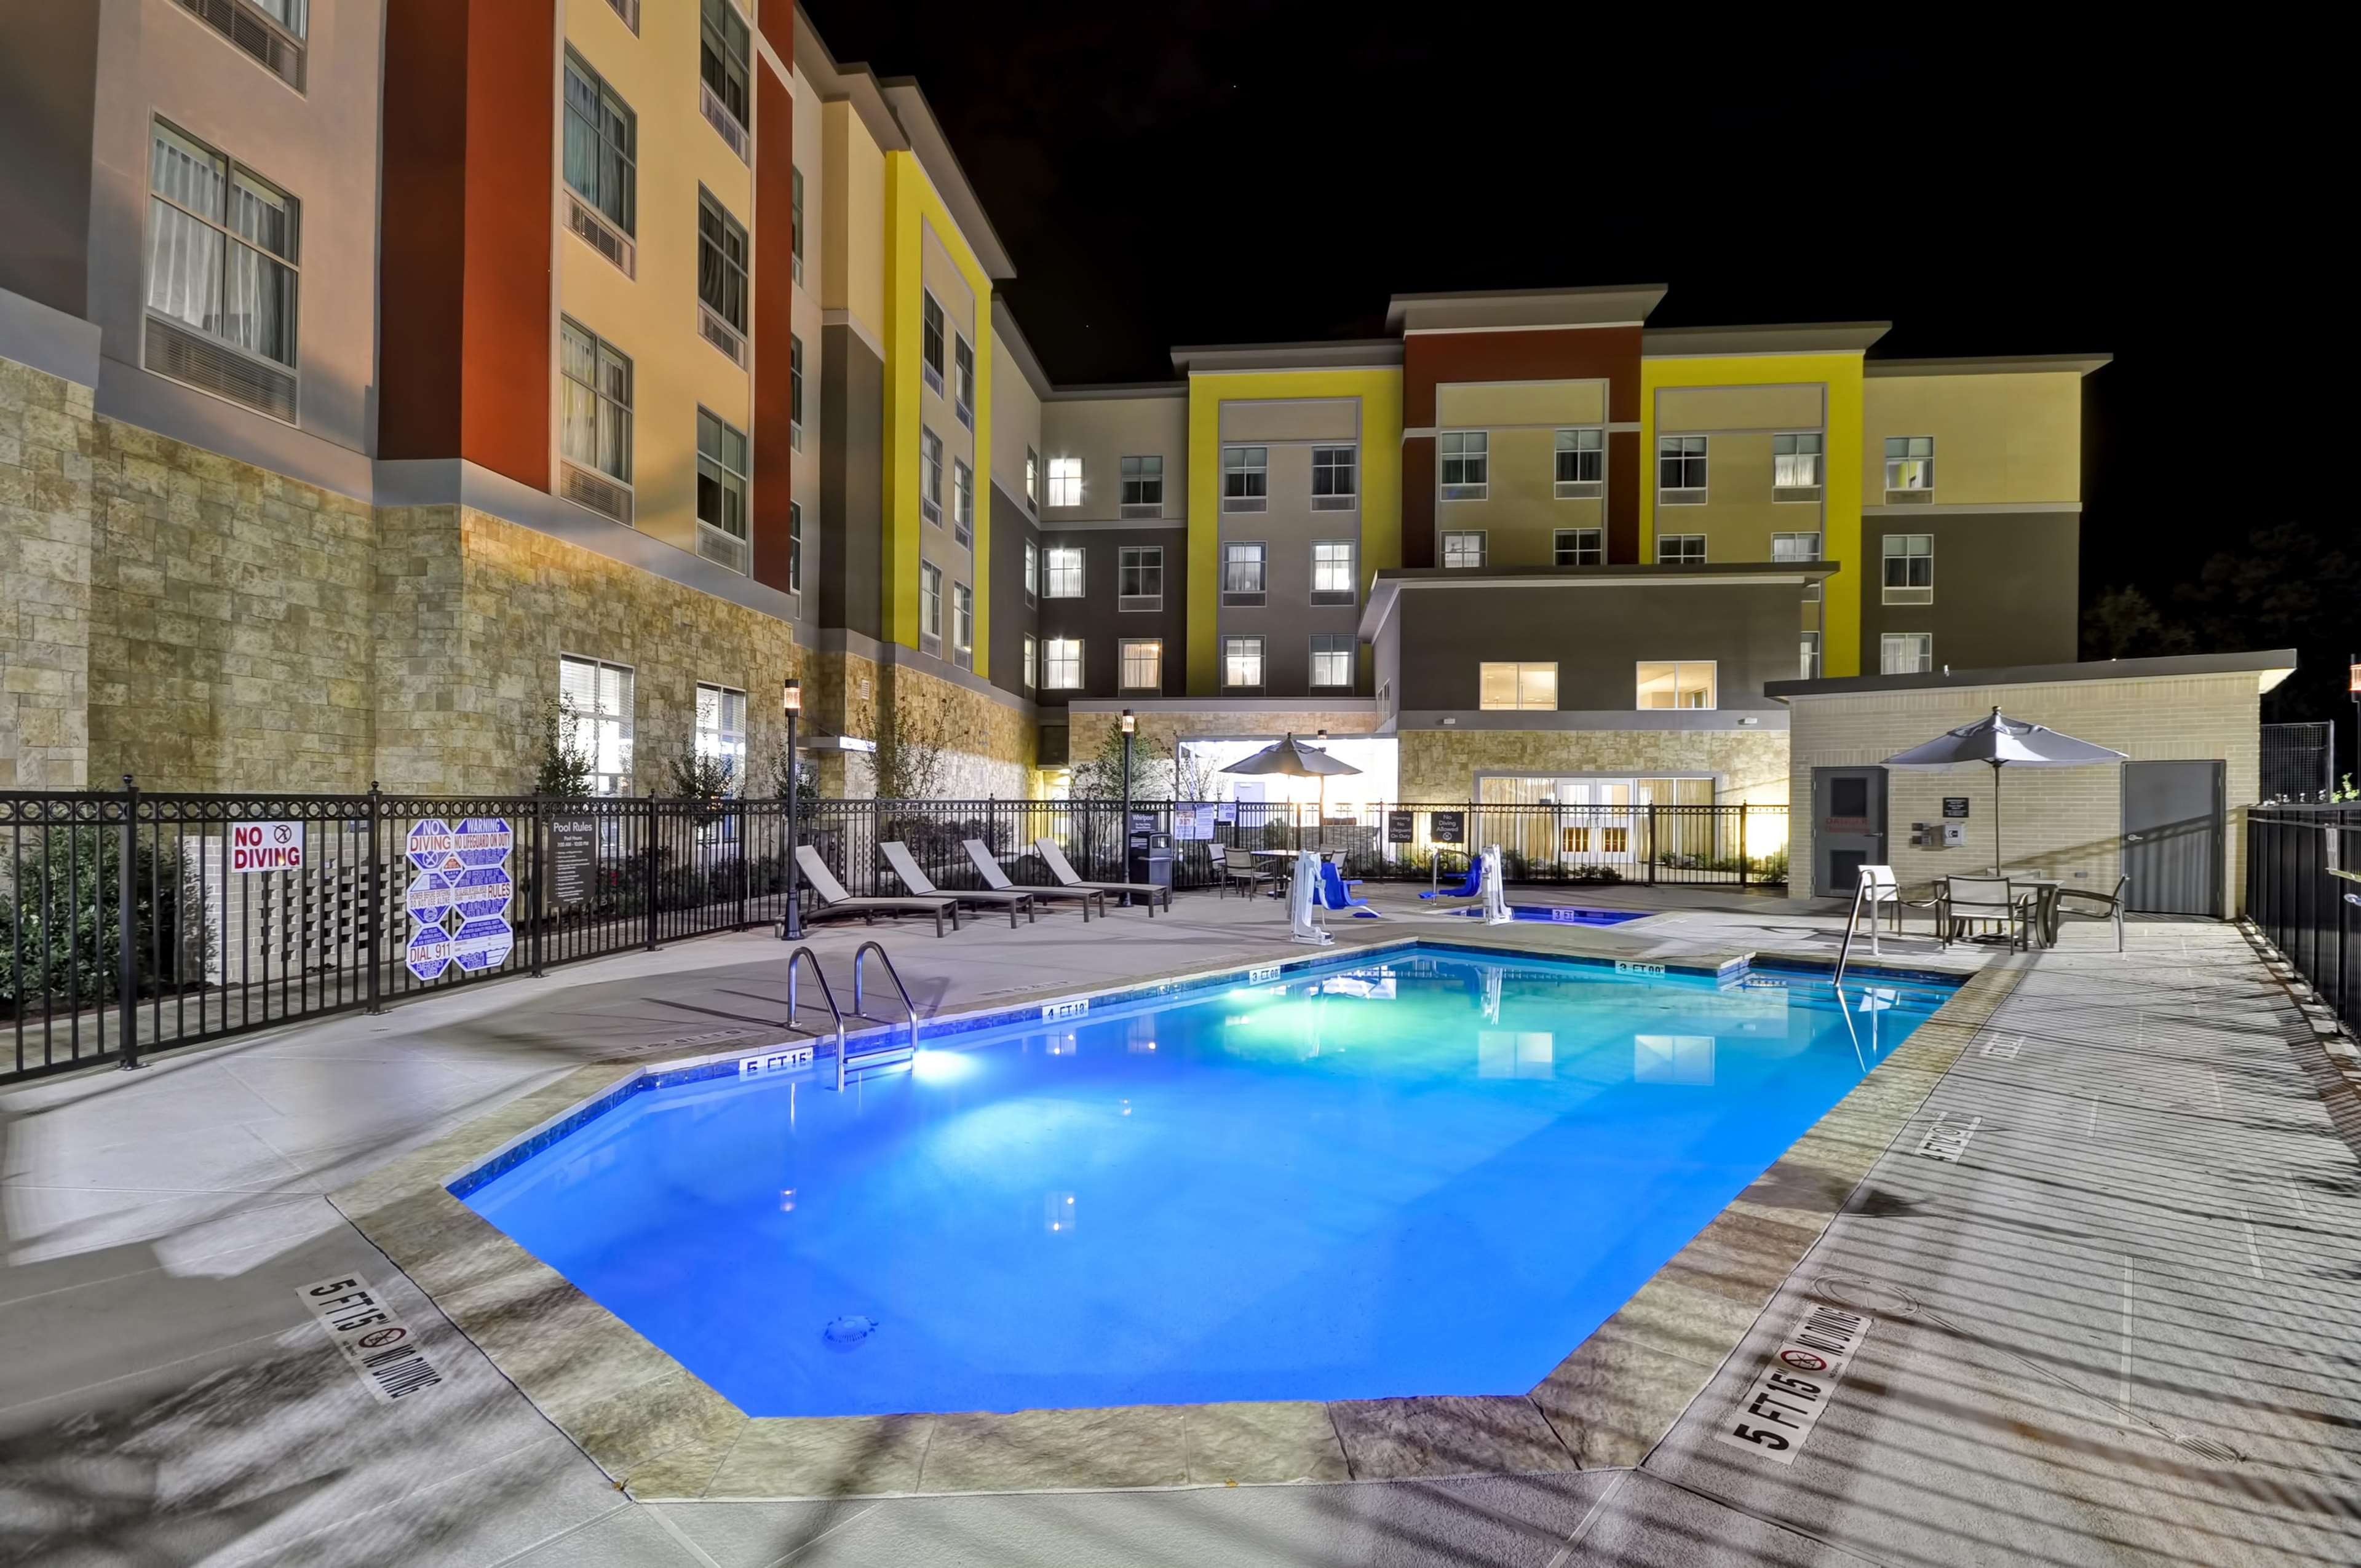 Homewood Suites by Hilton Tyler image 0